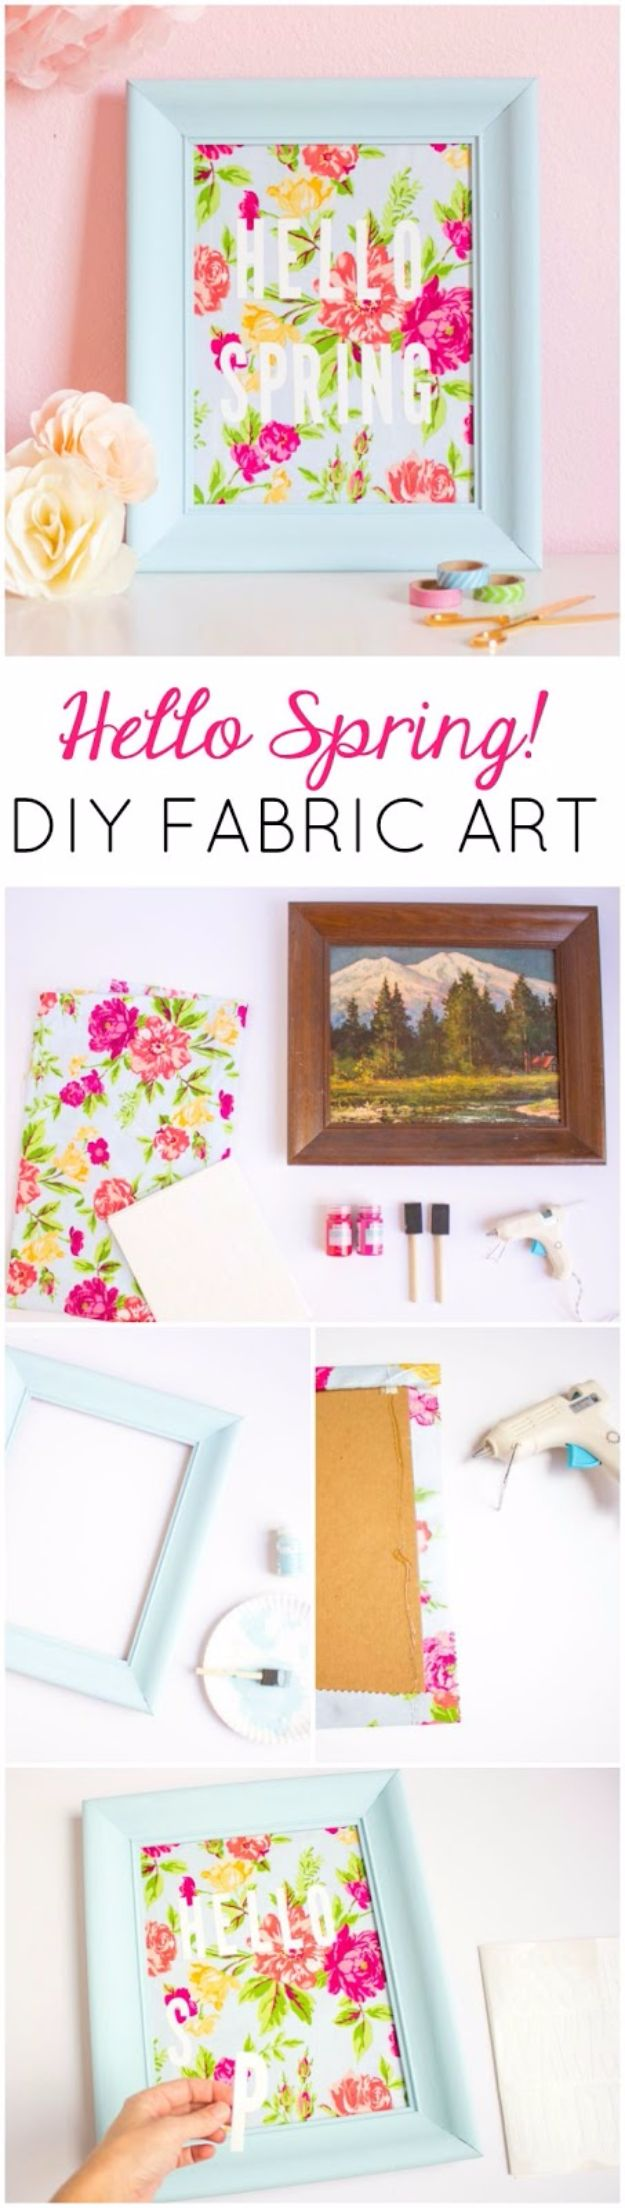 DIY Ideas With Old Picture Frames - DIY Fabric Art - Cool Crafts To Make With A Repurposed Picture Frame - Cheap Do It Yourself Gifts and Home Decor on A Budget - Fun Ideas for Decorating Your House and Room http://diyjoy.com/diy-ideas-picture-frames